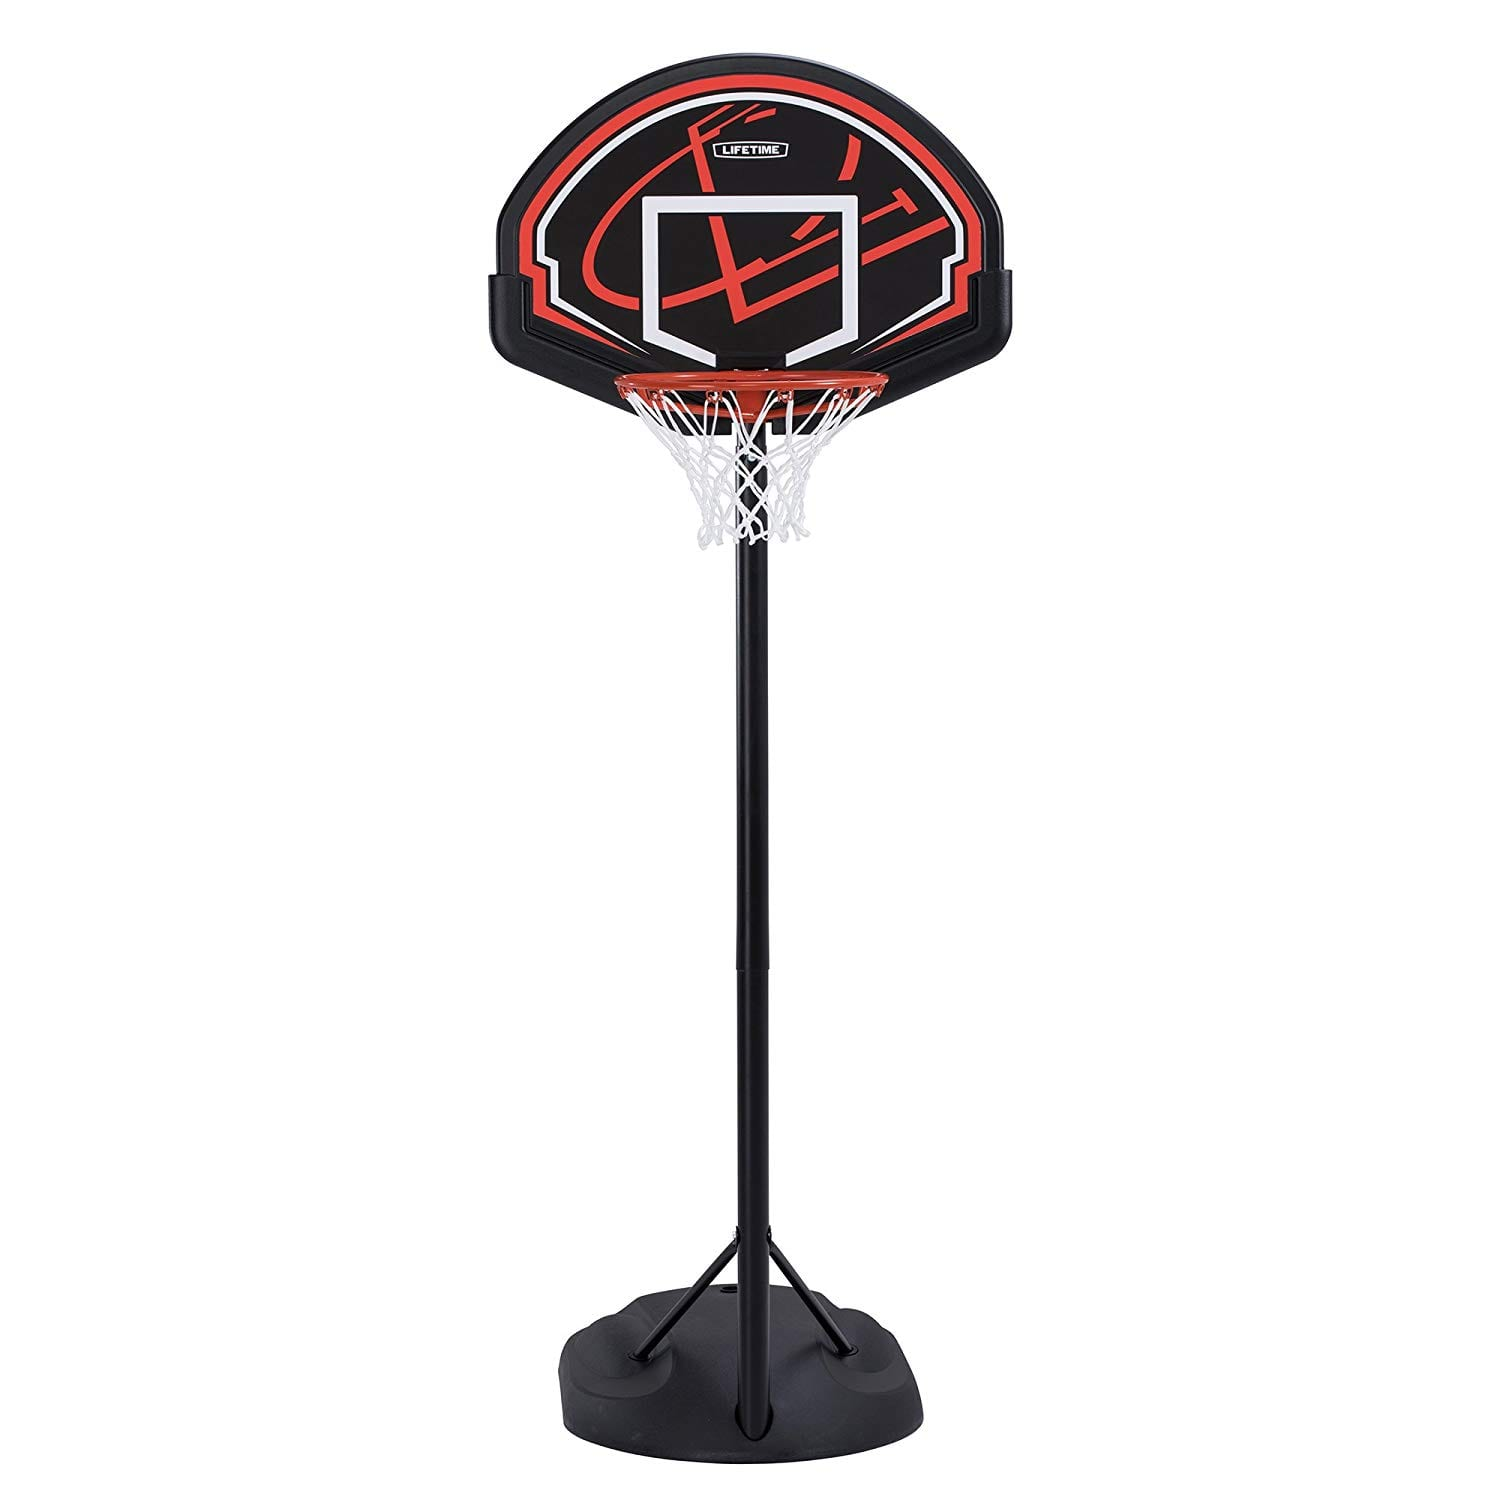 Lifetime 90022 Height Adjustable Basketball System for Youth